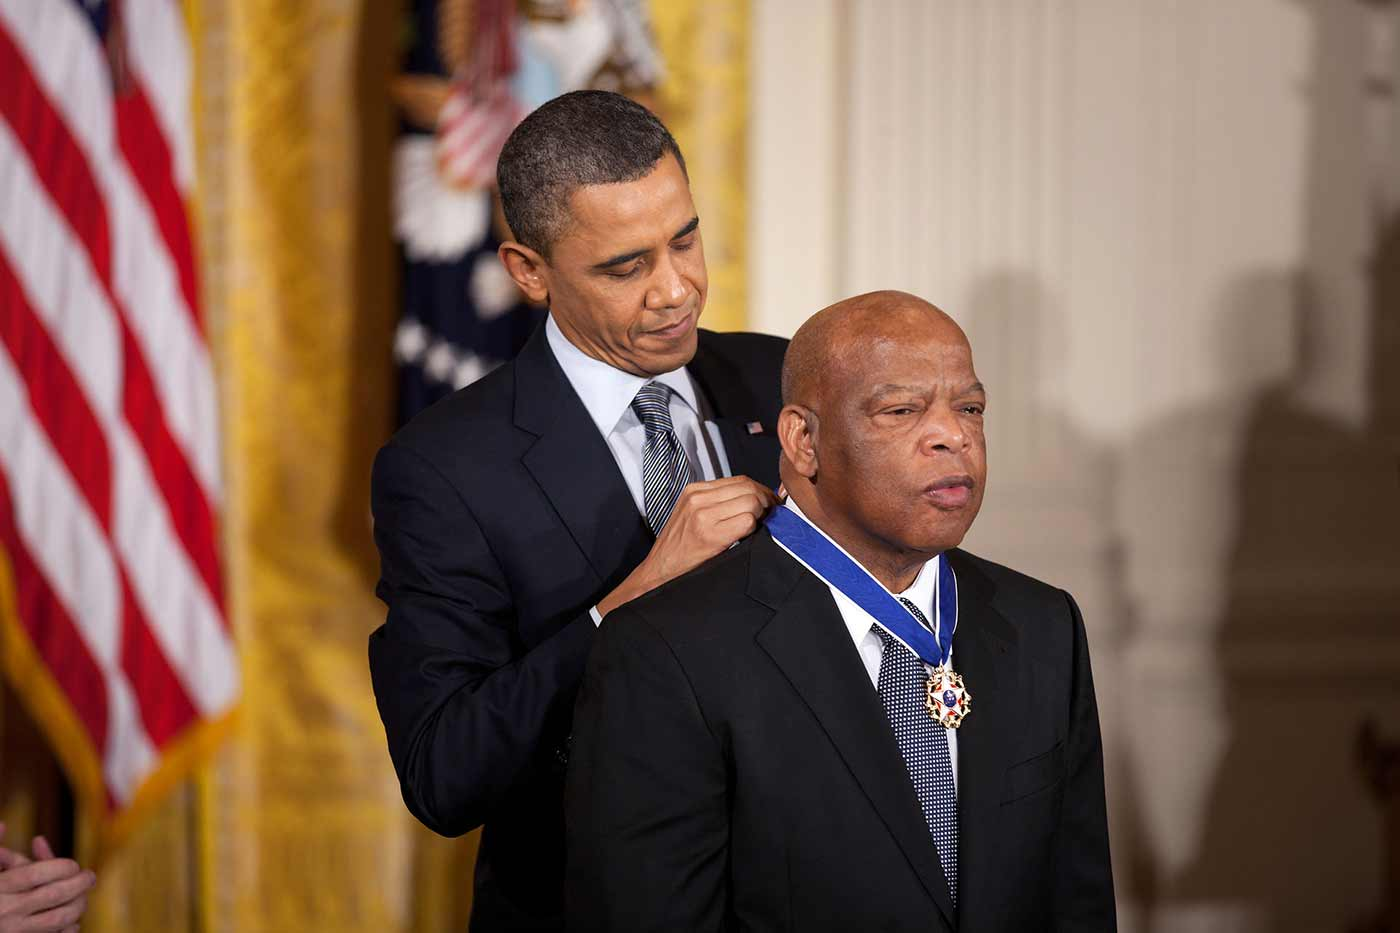 President Obama giving John Lewis the Medal of Freedom